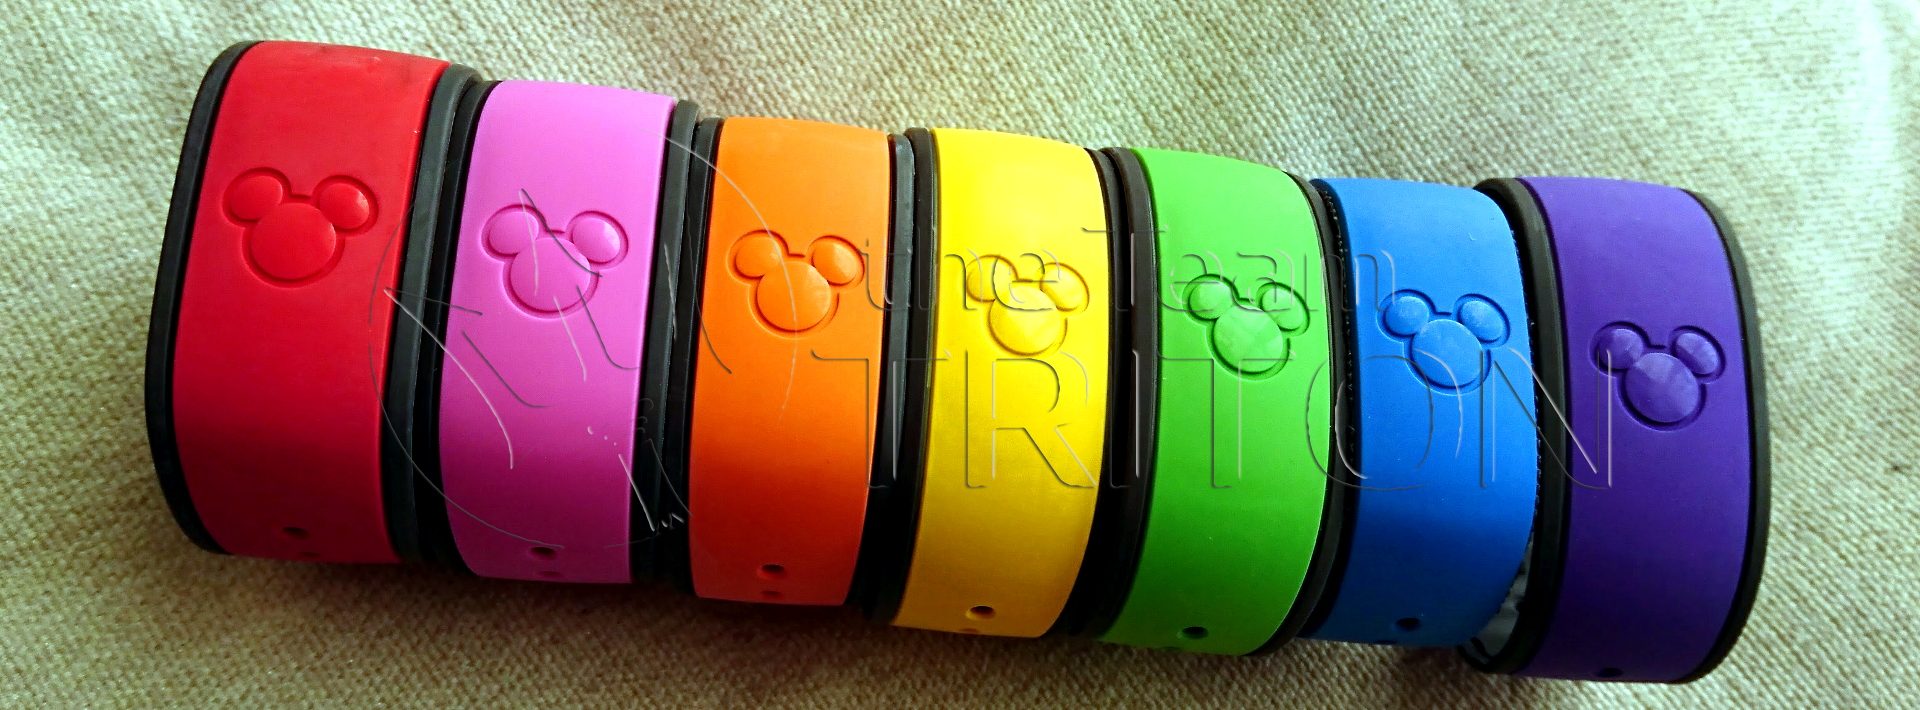 magicband-colors-eye-catch-001